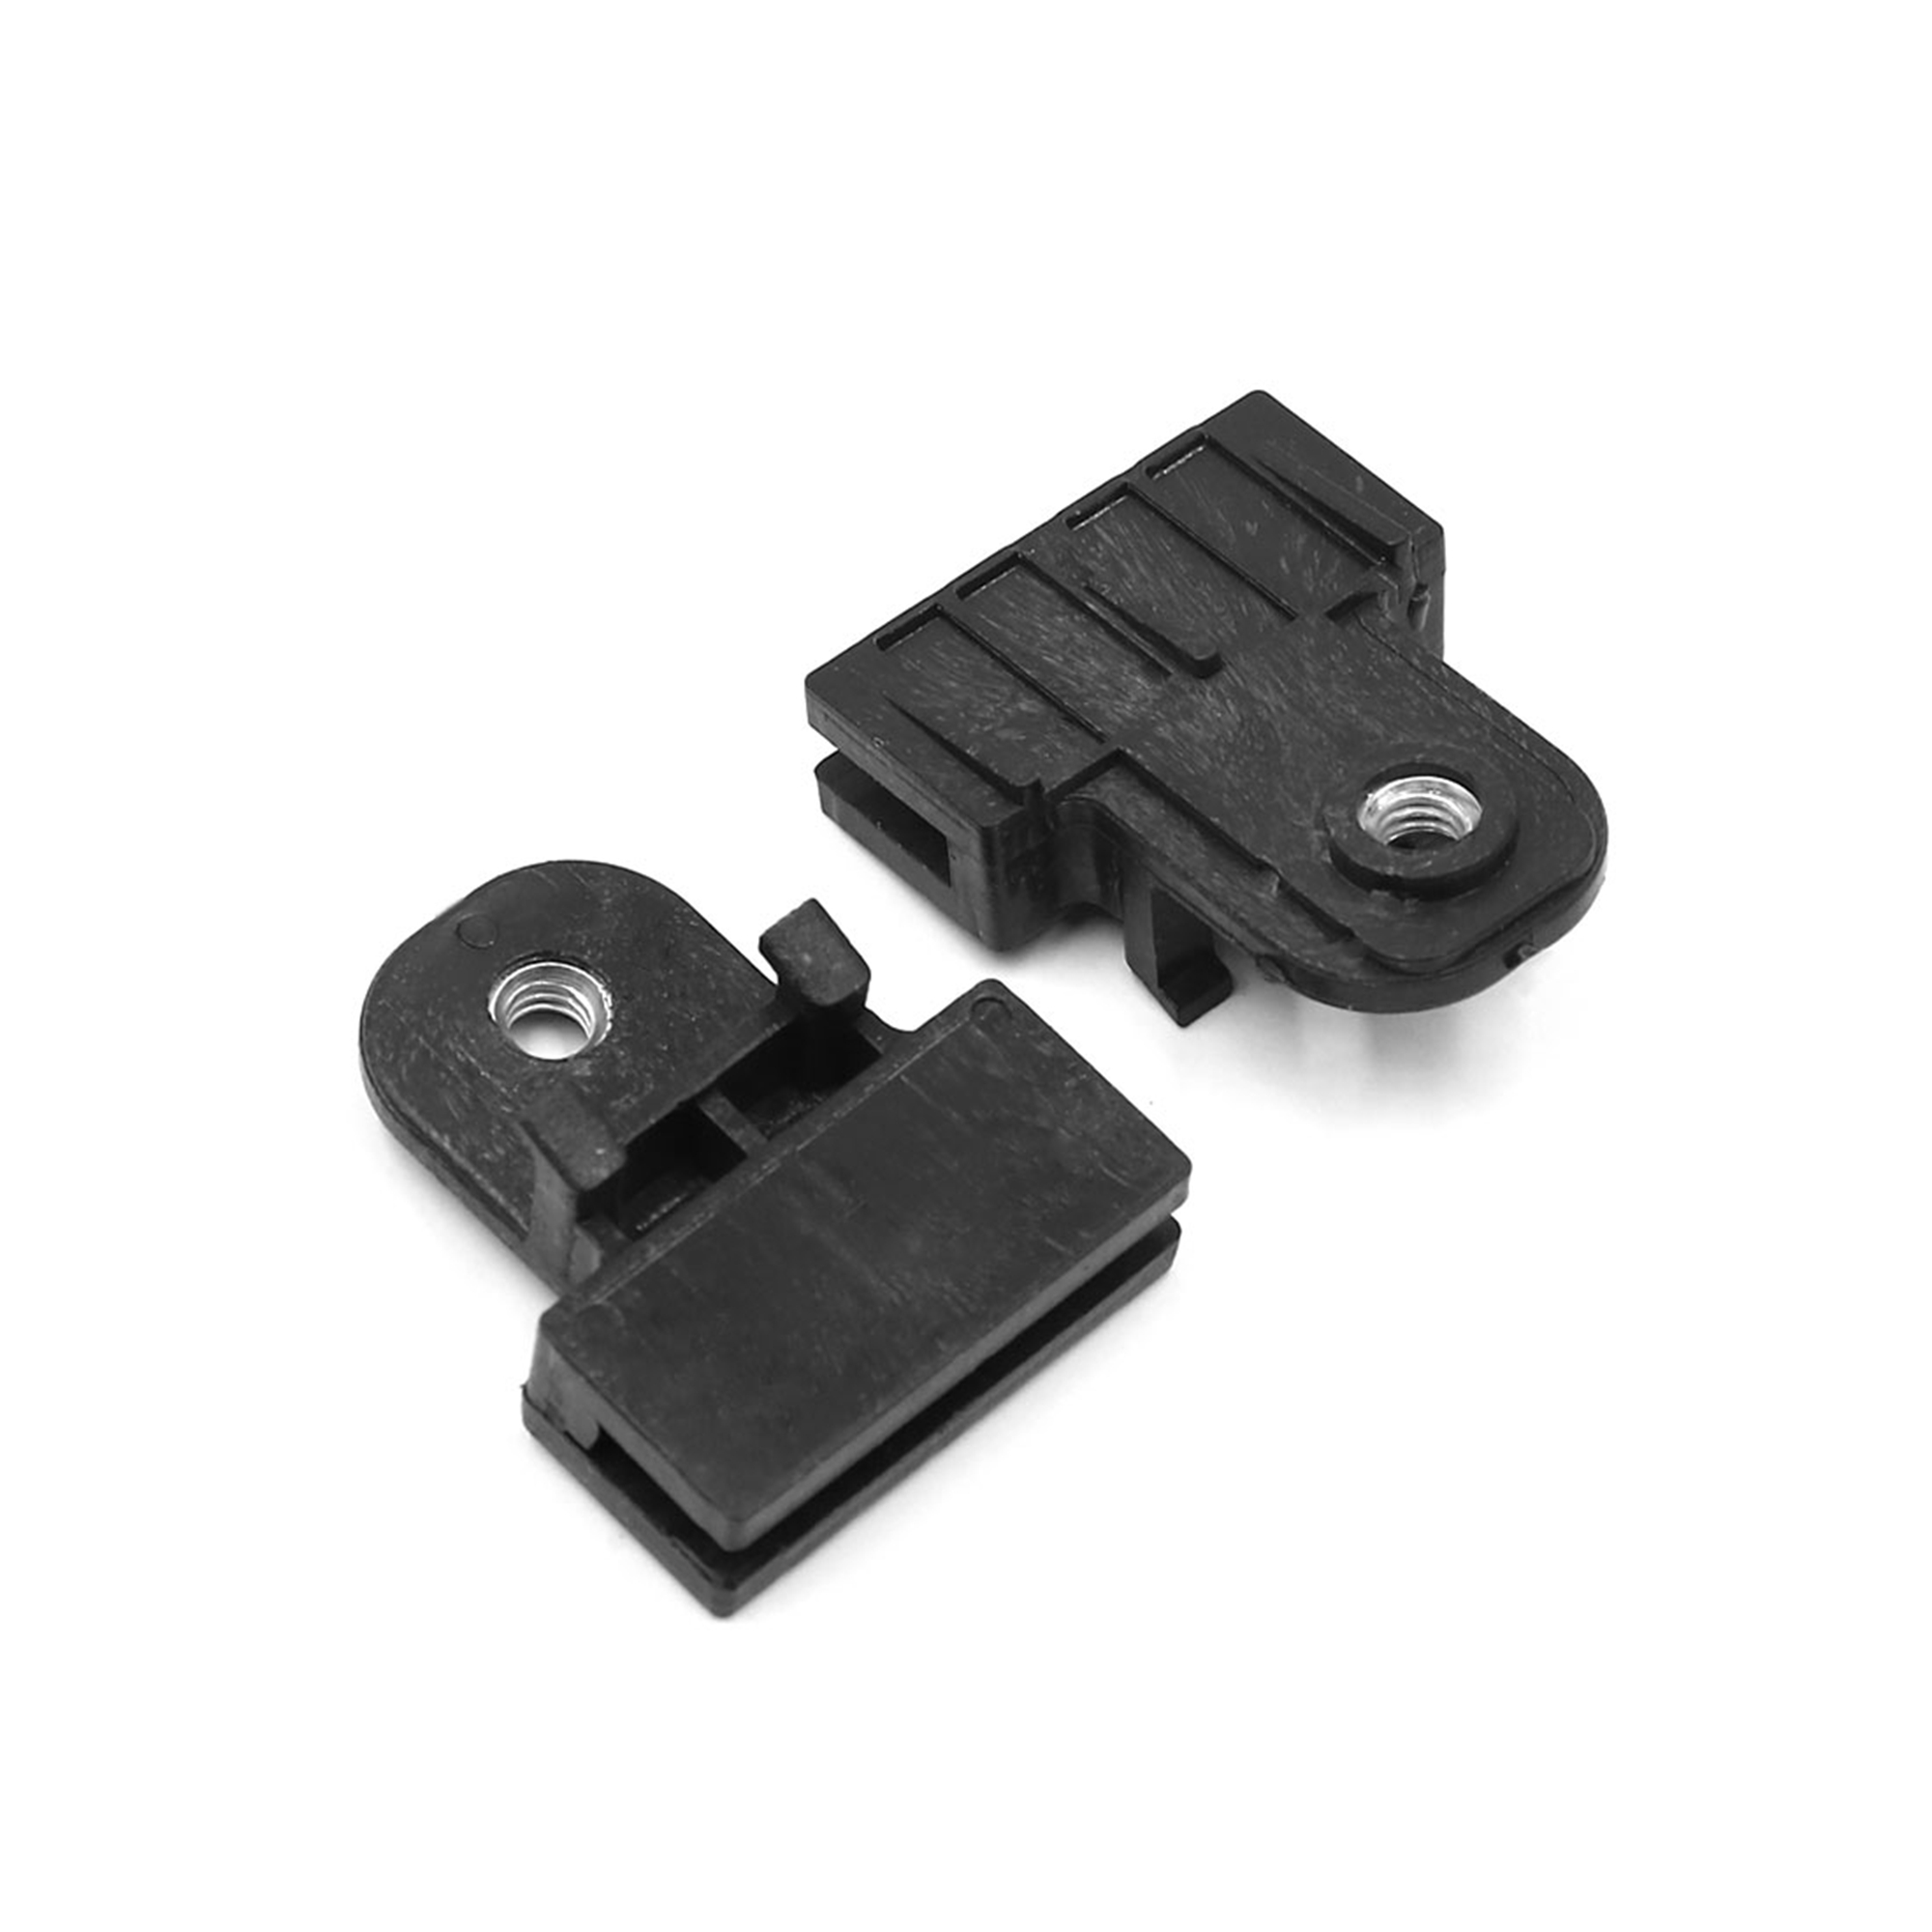 10Pcs Black Universal Window Glass Channel Support Holder Clips 40 x 5mm Slot